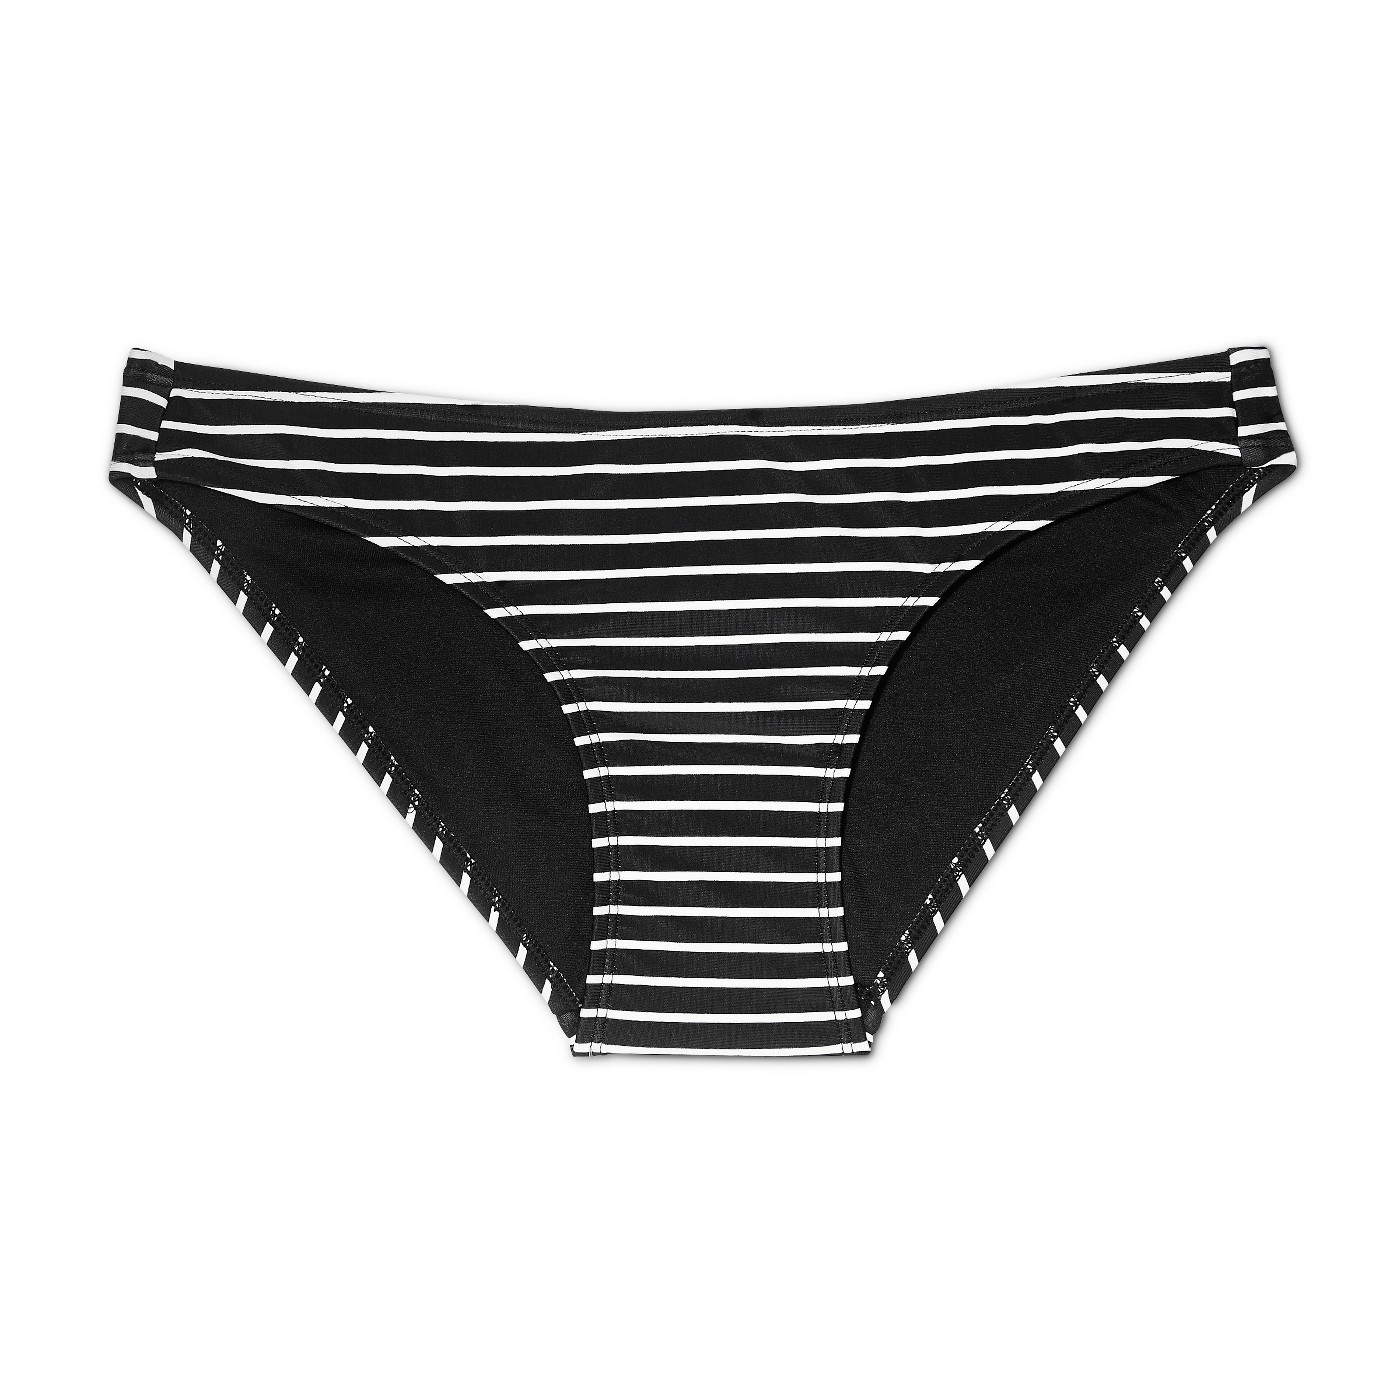 12 Sensational Swimsuits That You Can Wear All Summer